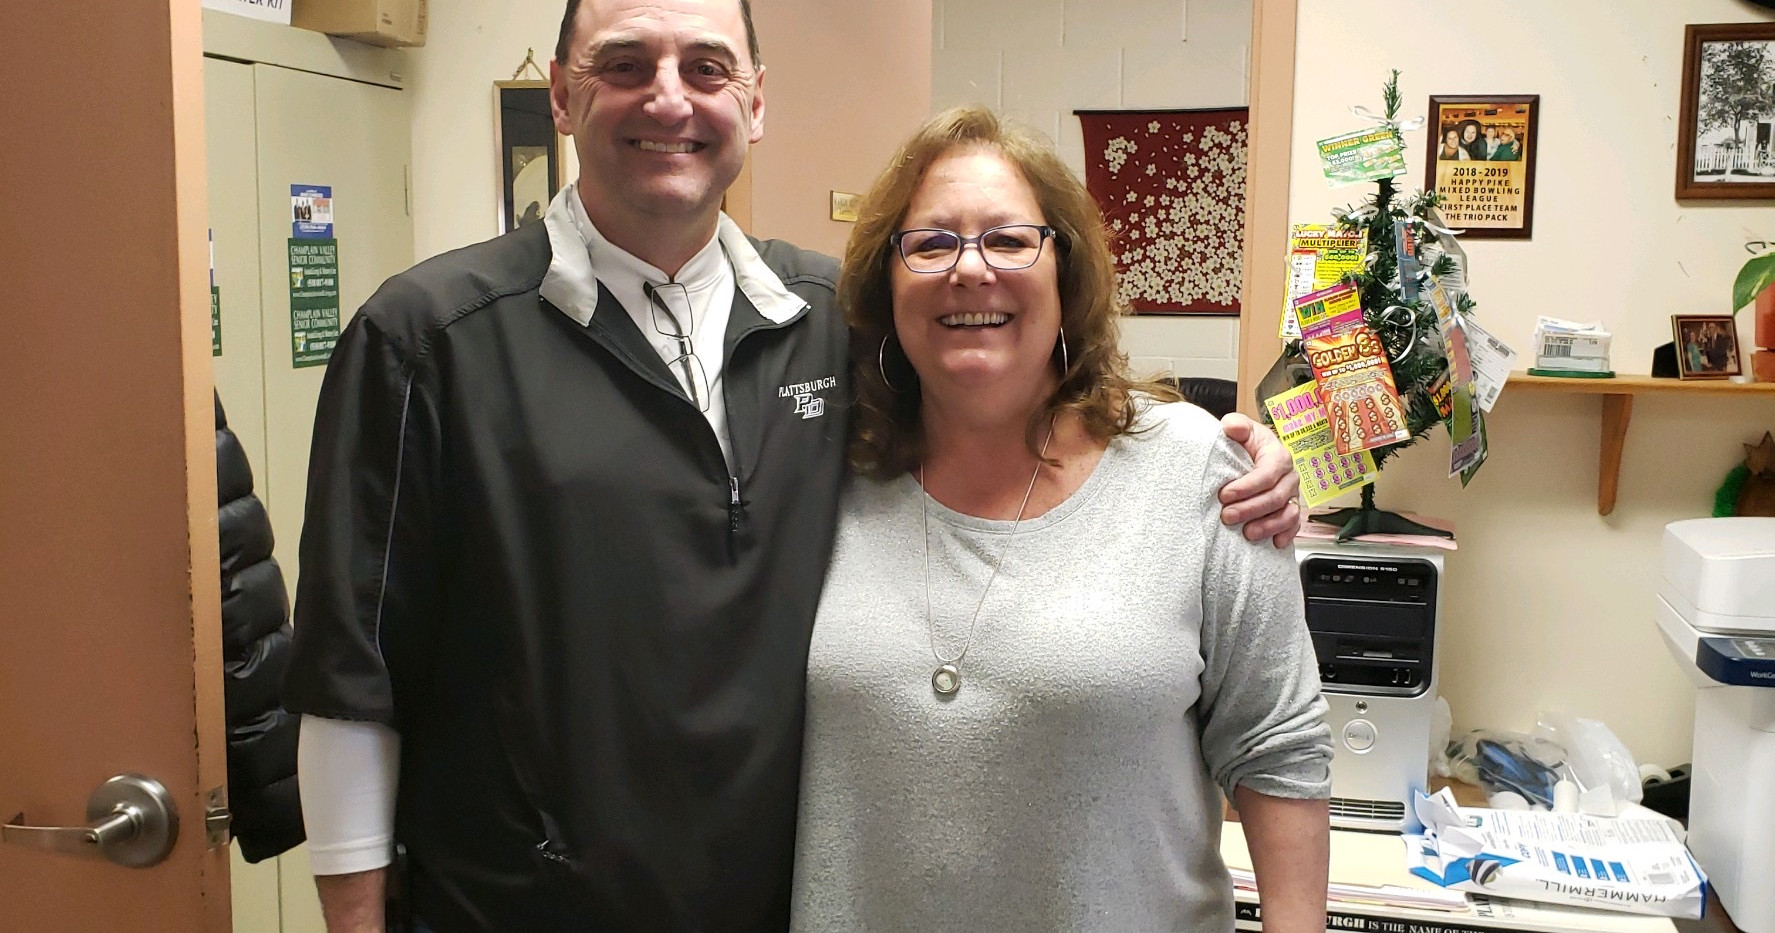 Scott with director of the Senior Center